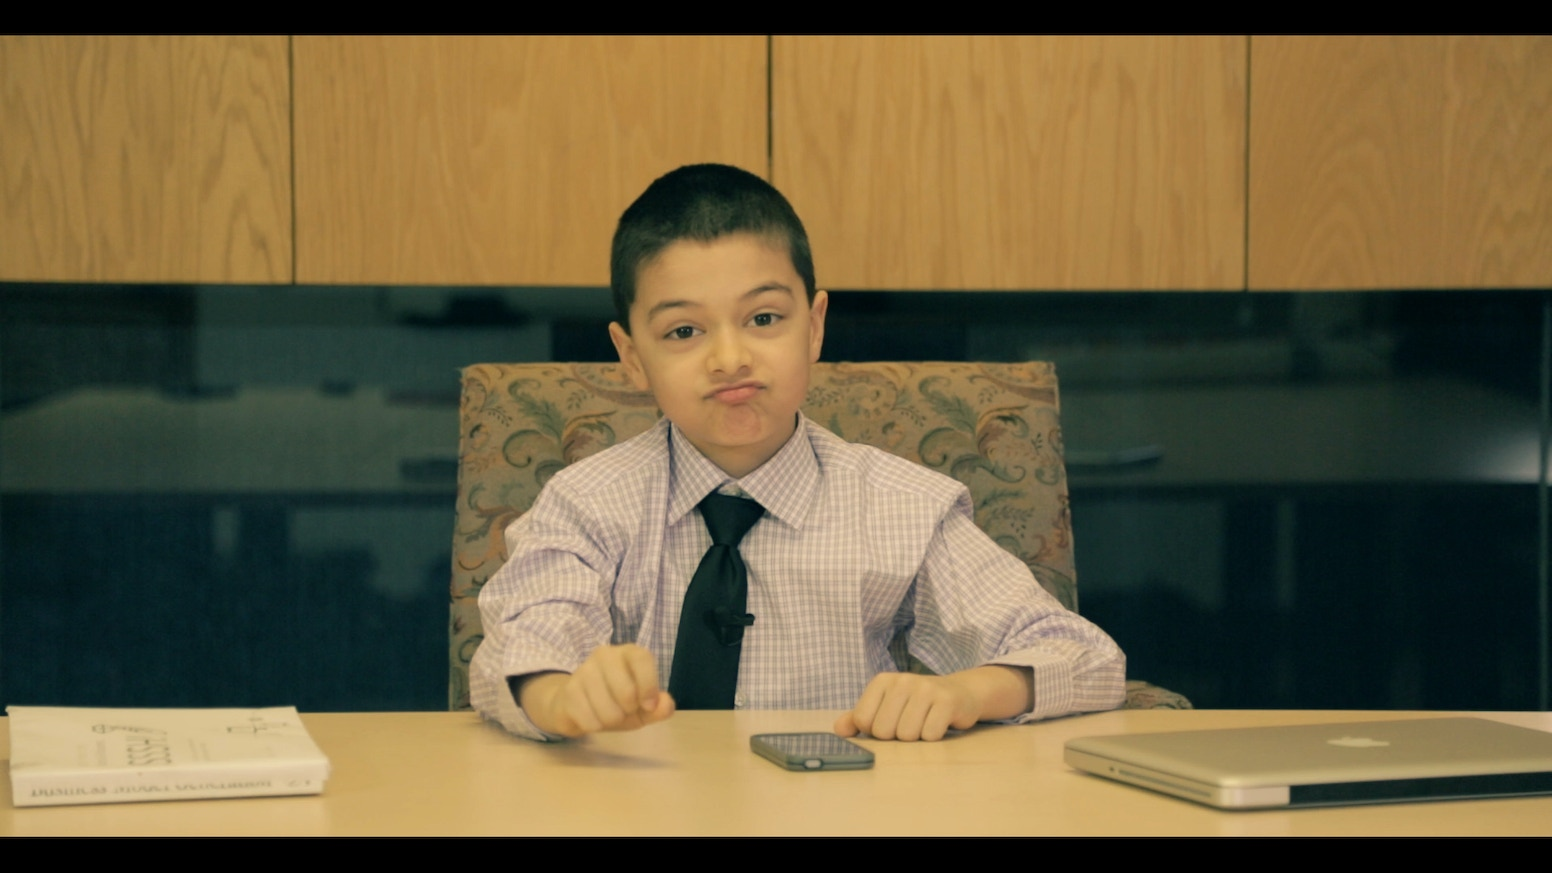 There's no shortcut to success, really? What if a 6 year old offers us a whole new POV on the Art of Business?